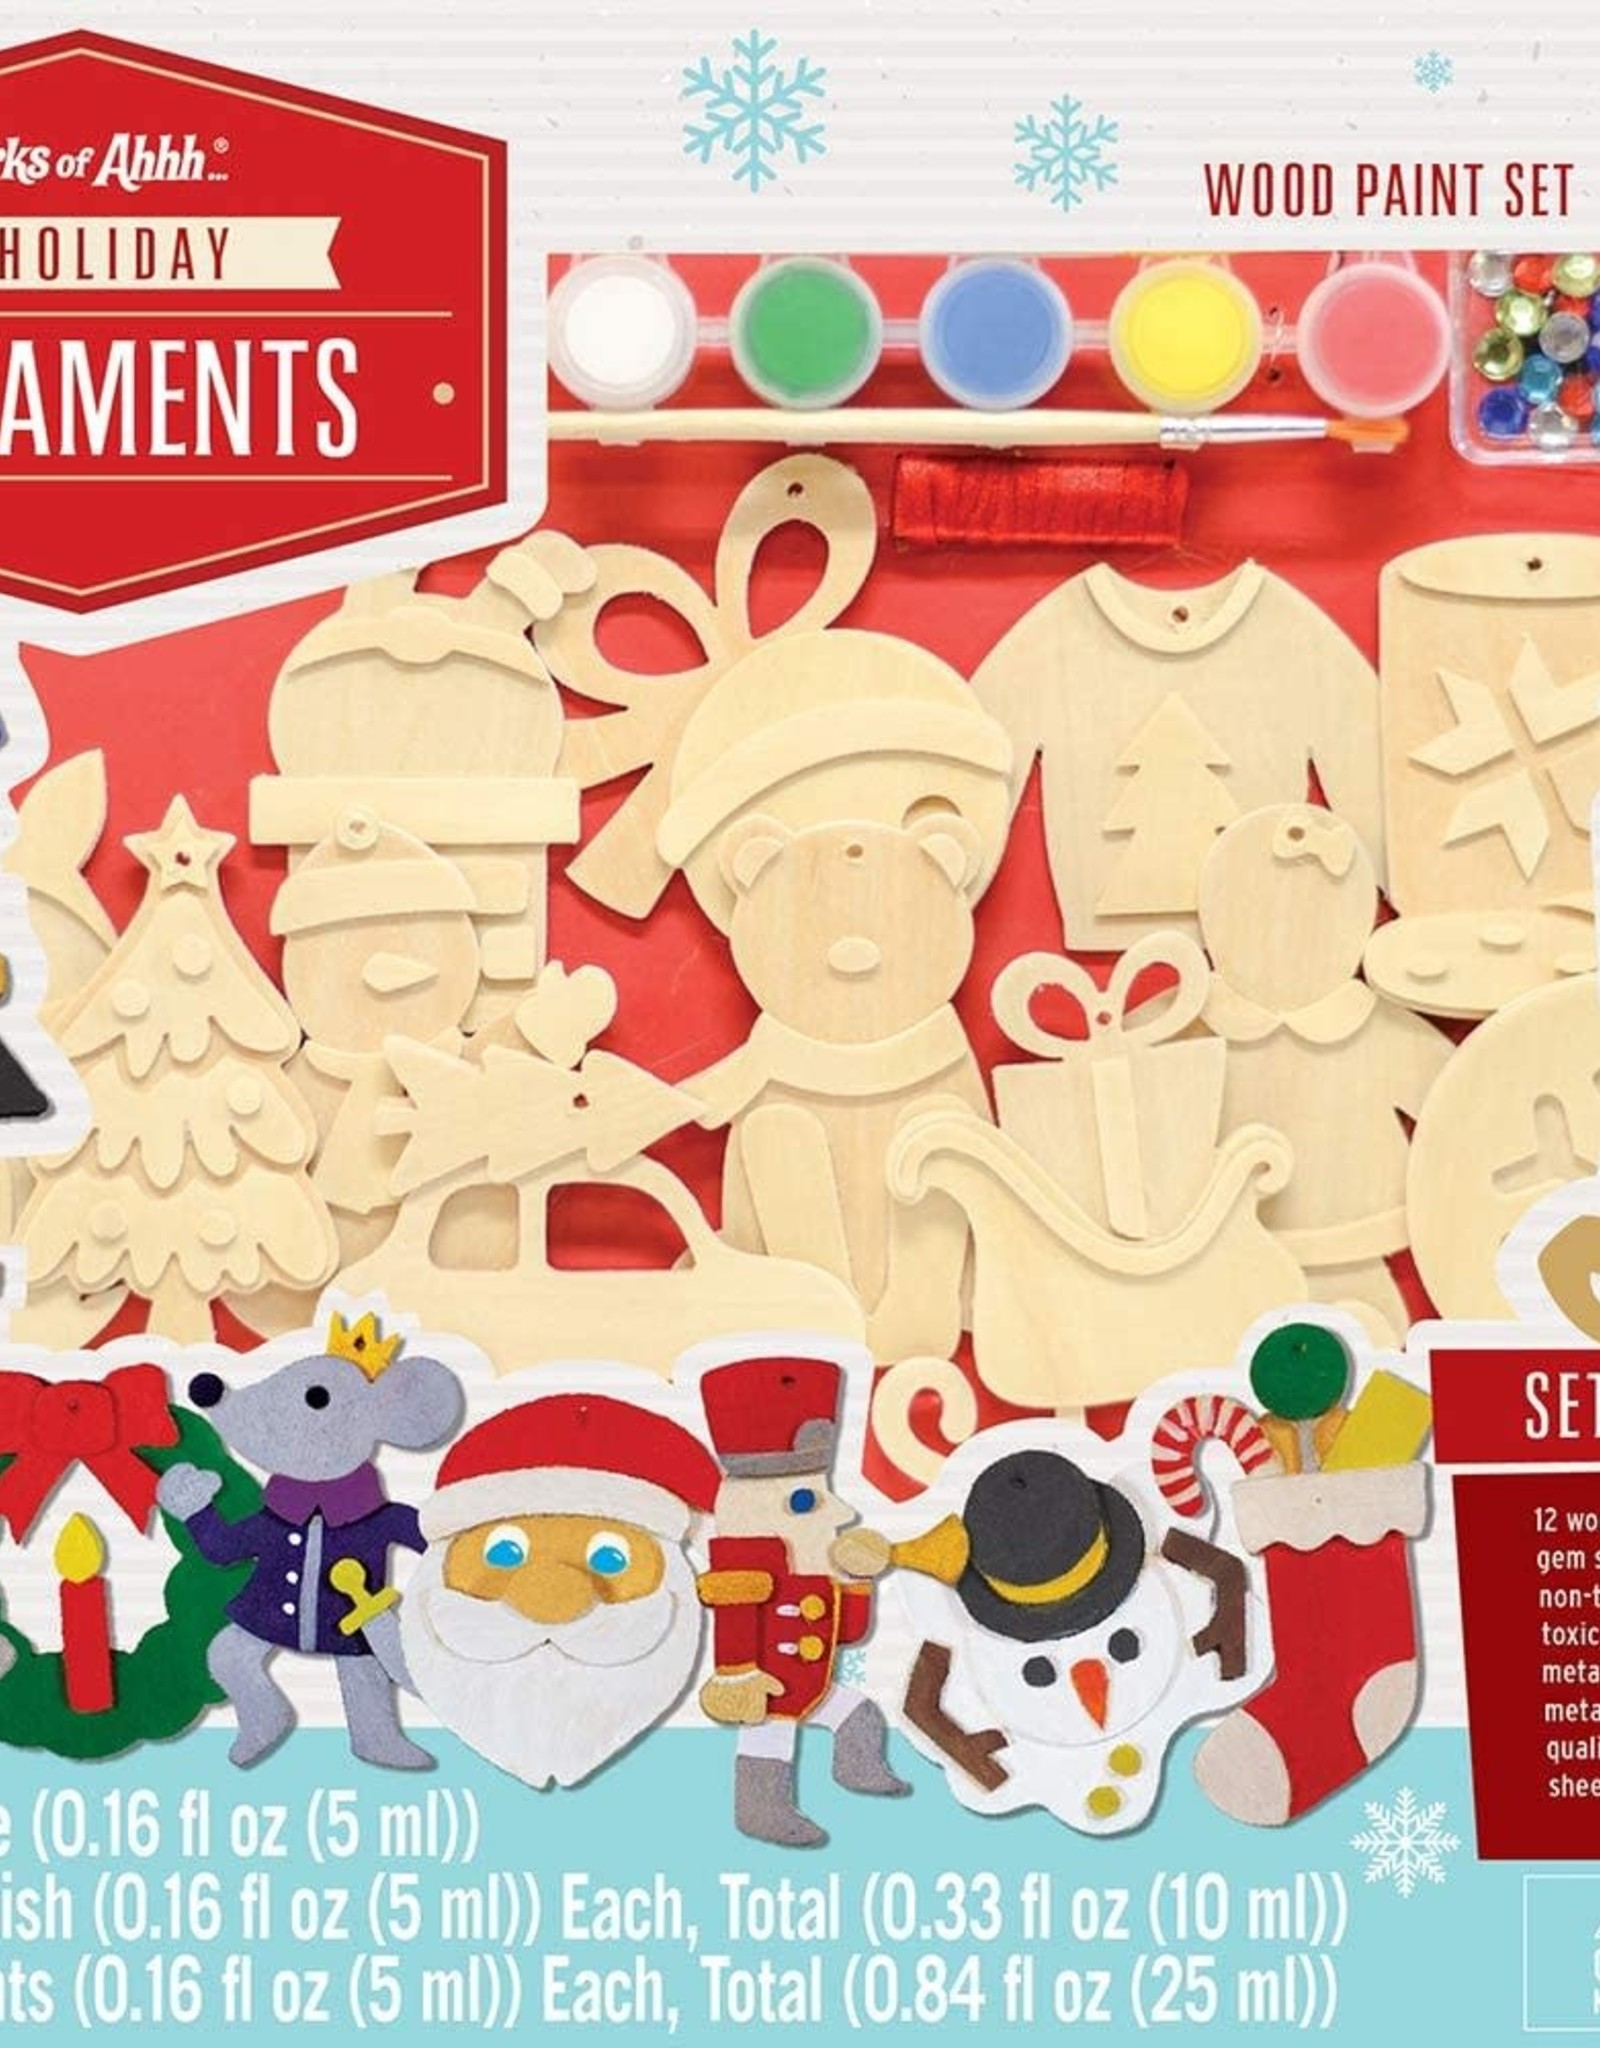 Works of Ahhh Paint Set 12 Holiday Ornaments